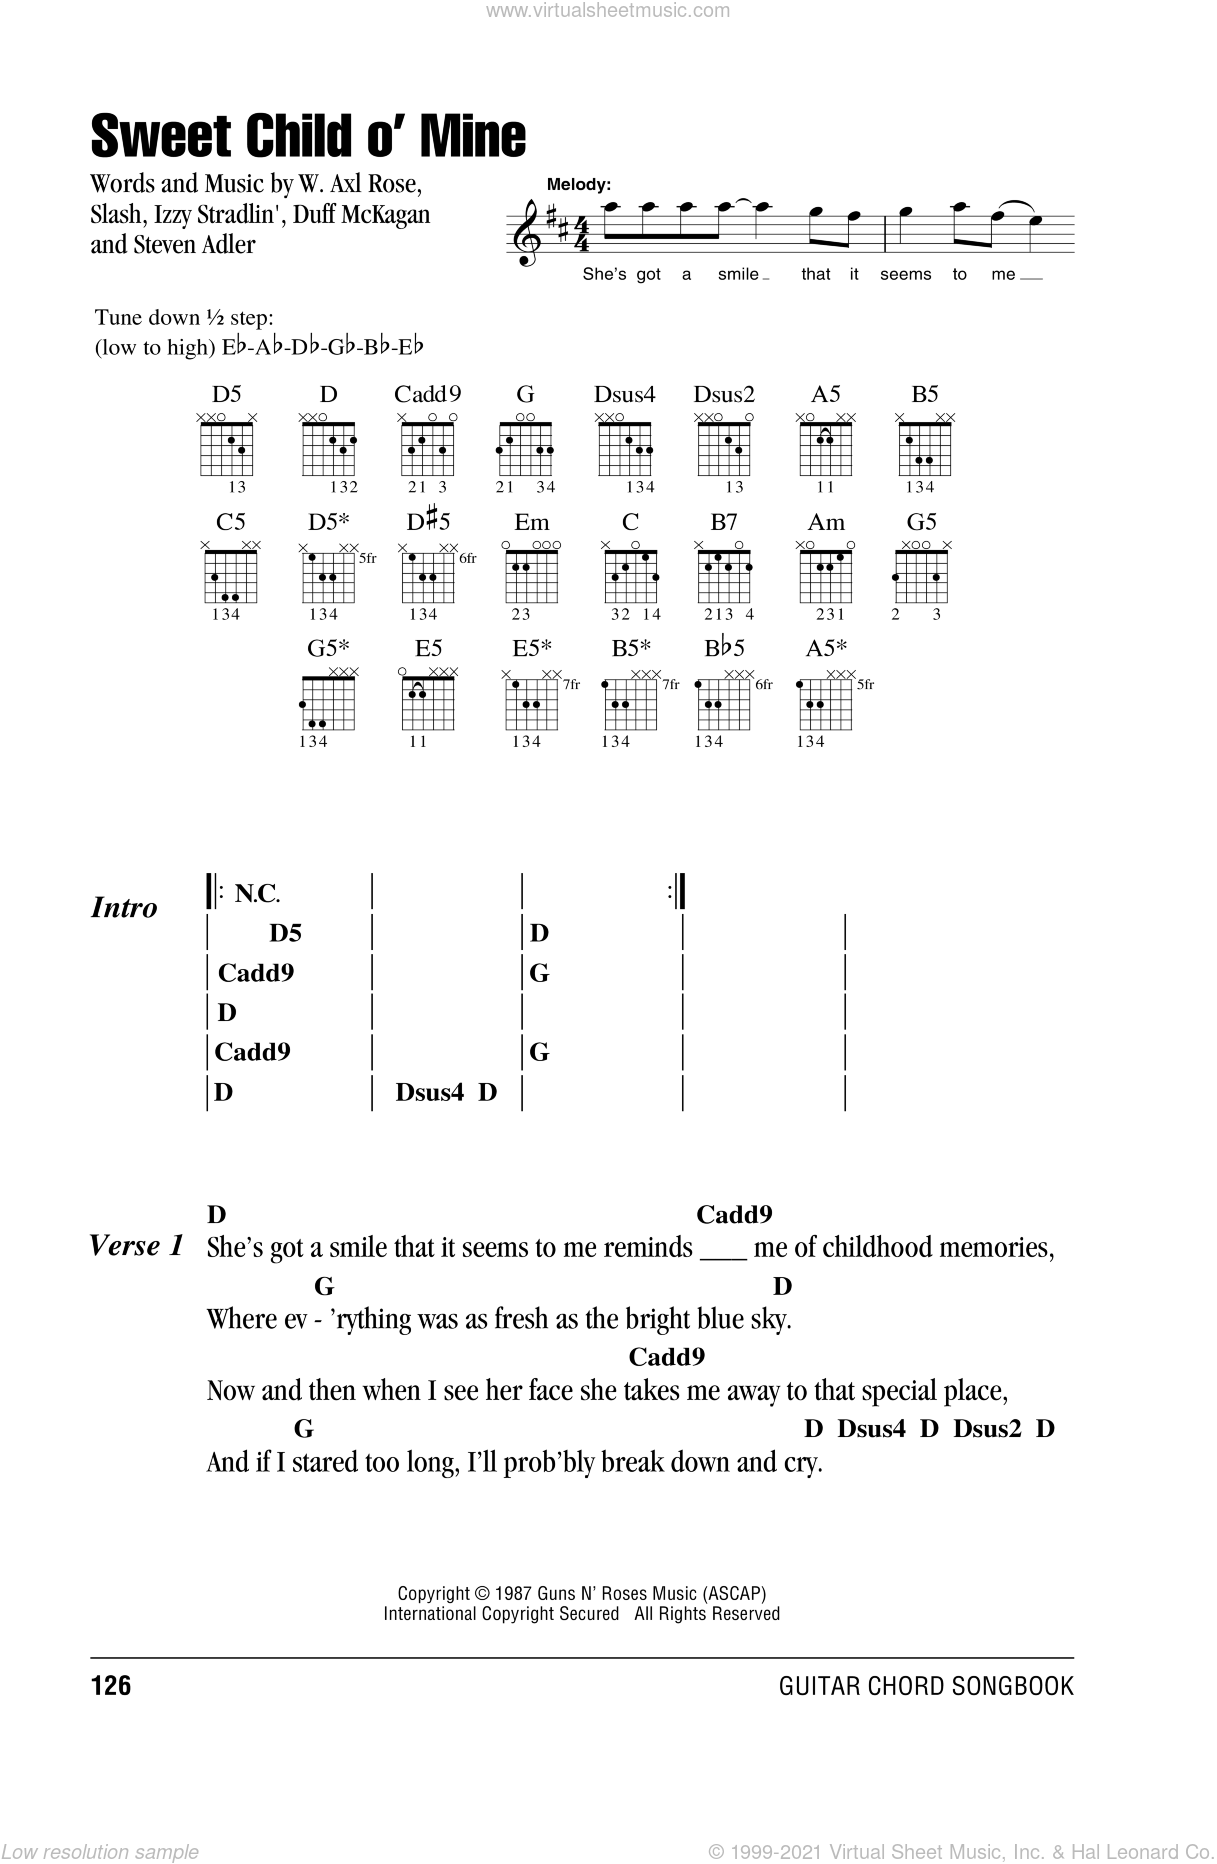 Roses - Sweet Child O\' Mine sheet music for guitar (chords) [PDF]